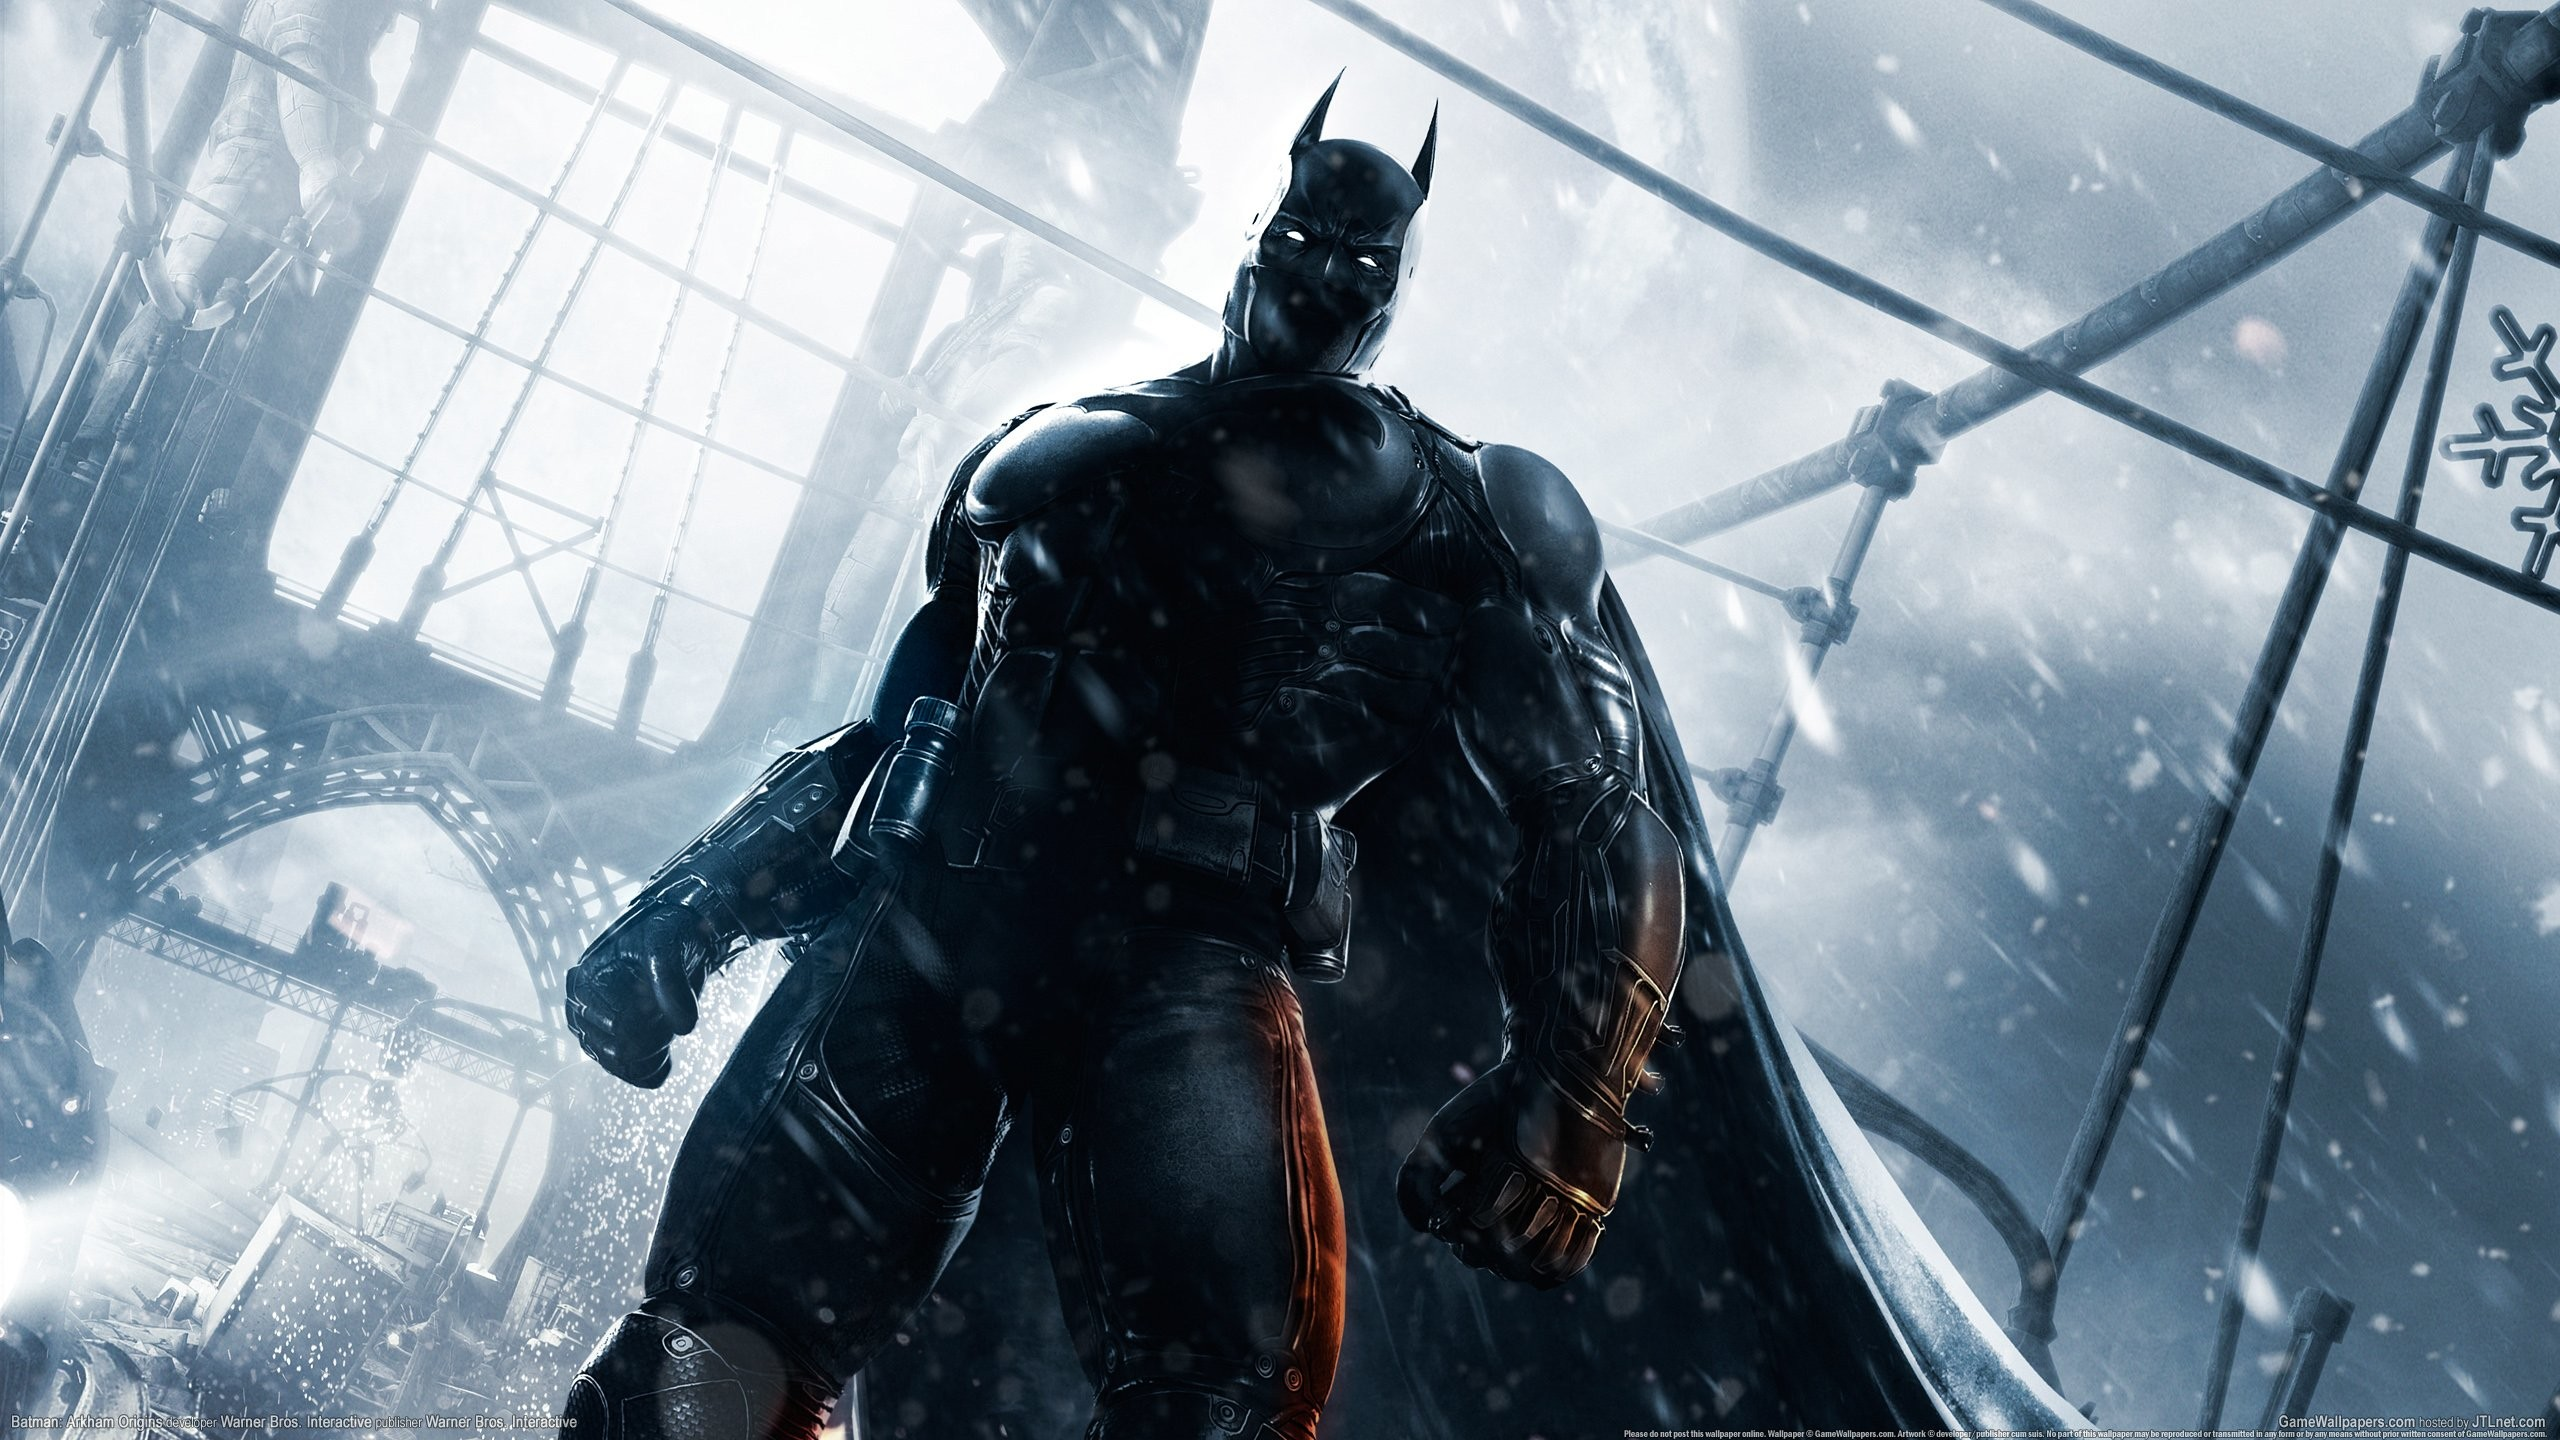 2560x1440 Batman: Arkham Origins (PC) - Games Wallpaper & Desktop-Hintergründe .